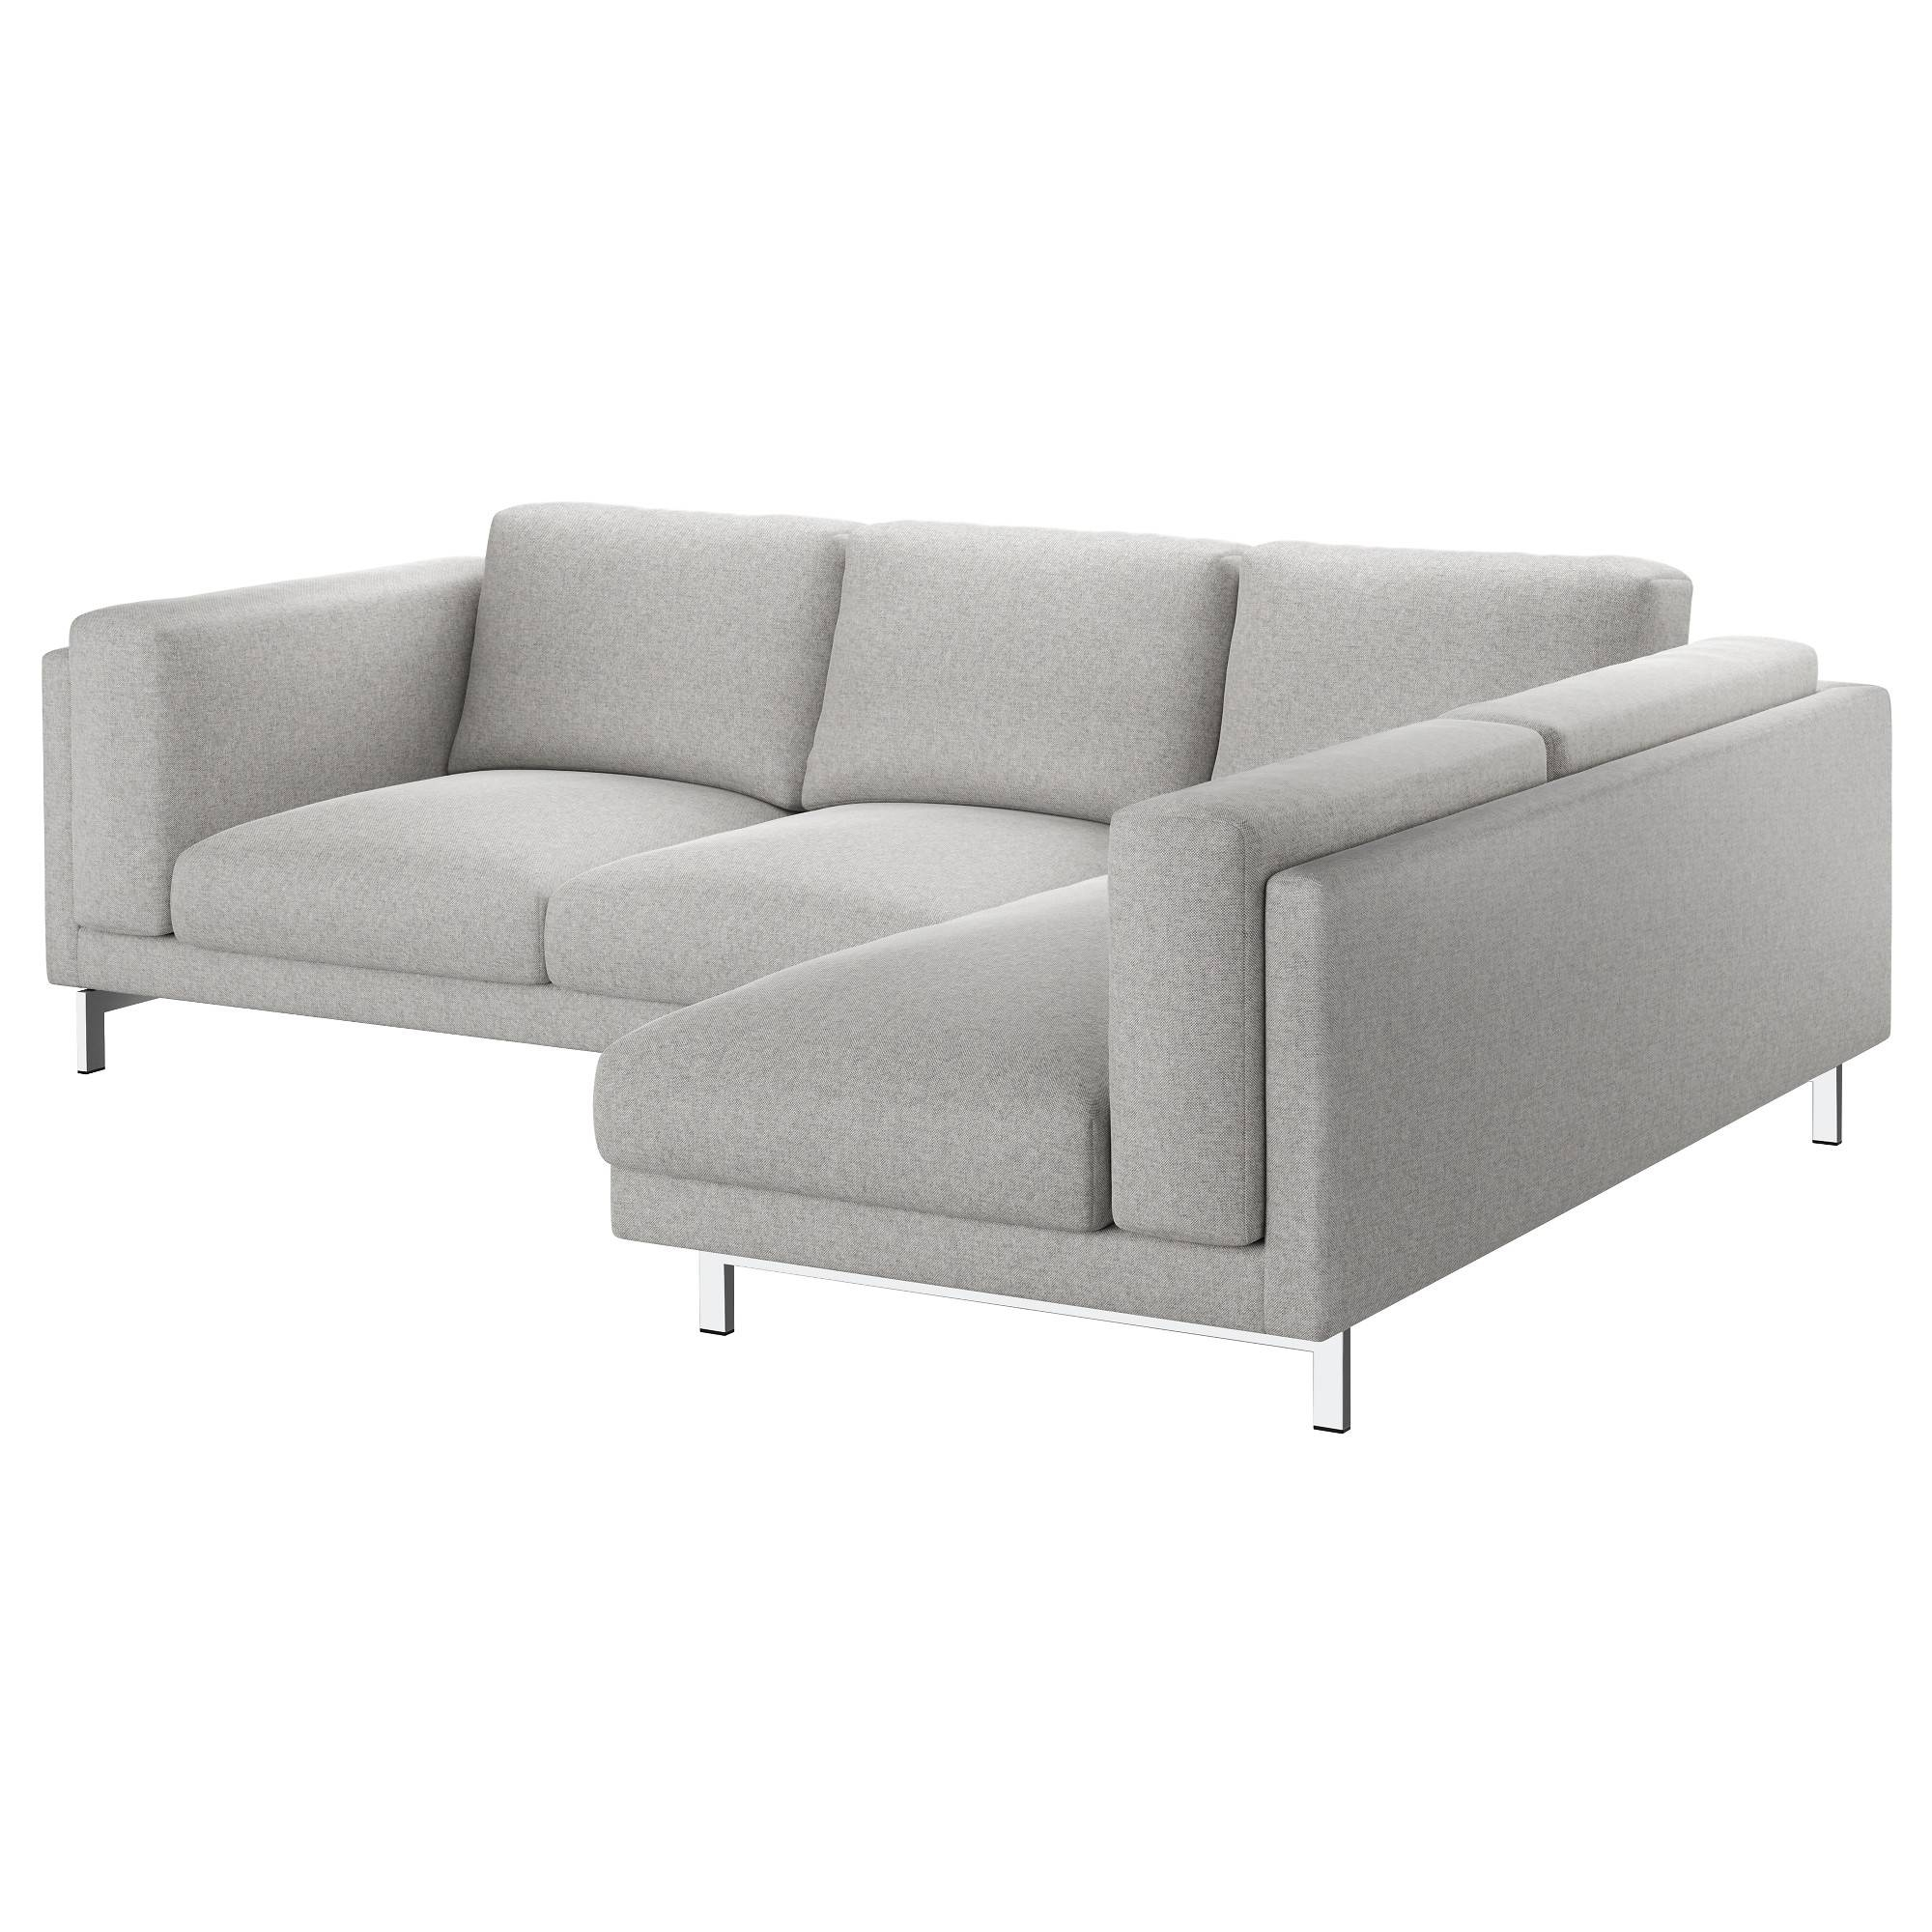 Ikea Nockeby Two Seat Sofa 30 Collection Of Ikea Two Seater Sofas